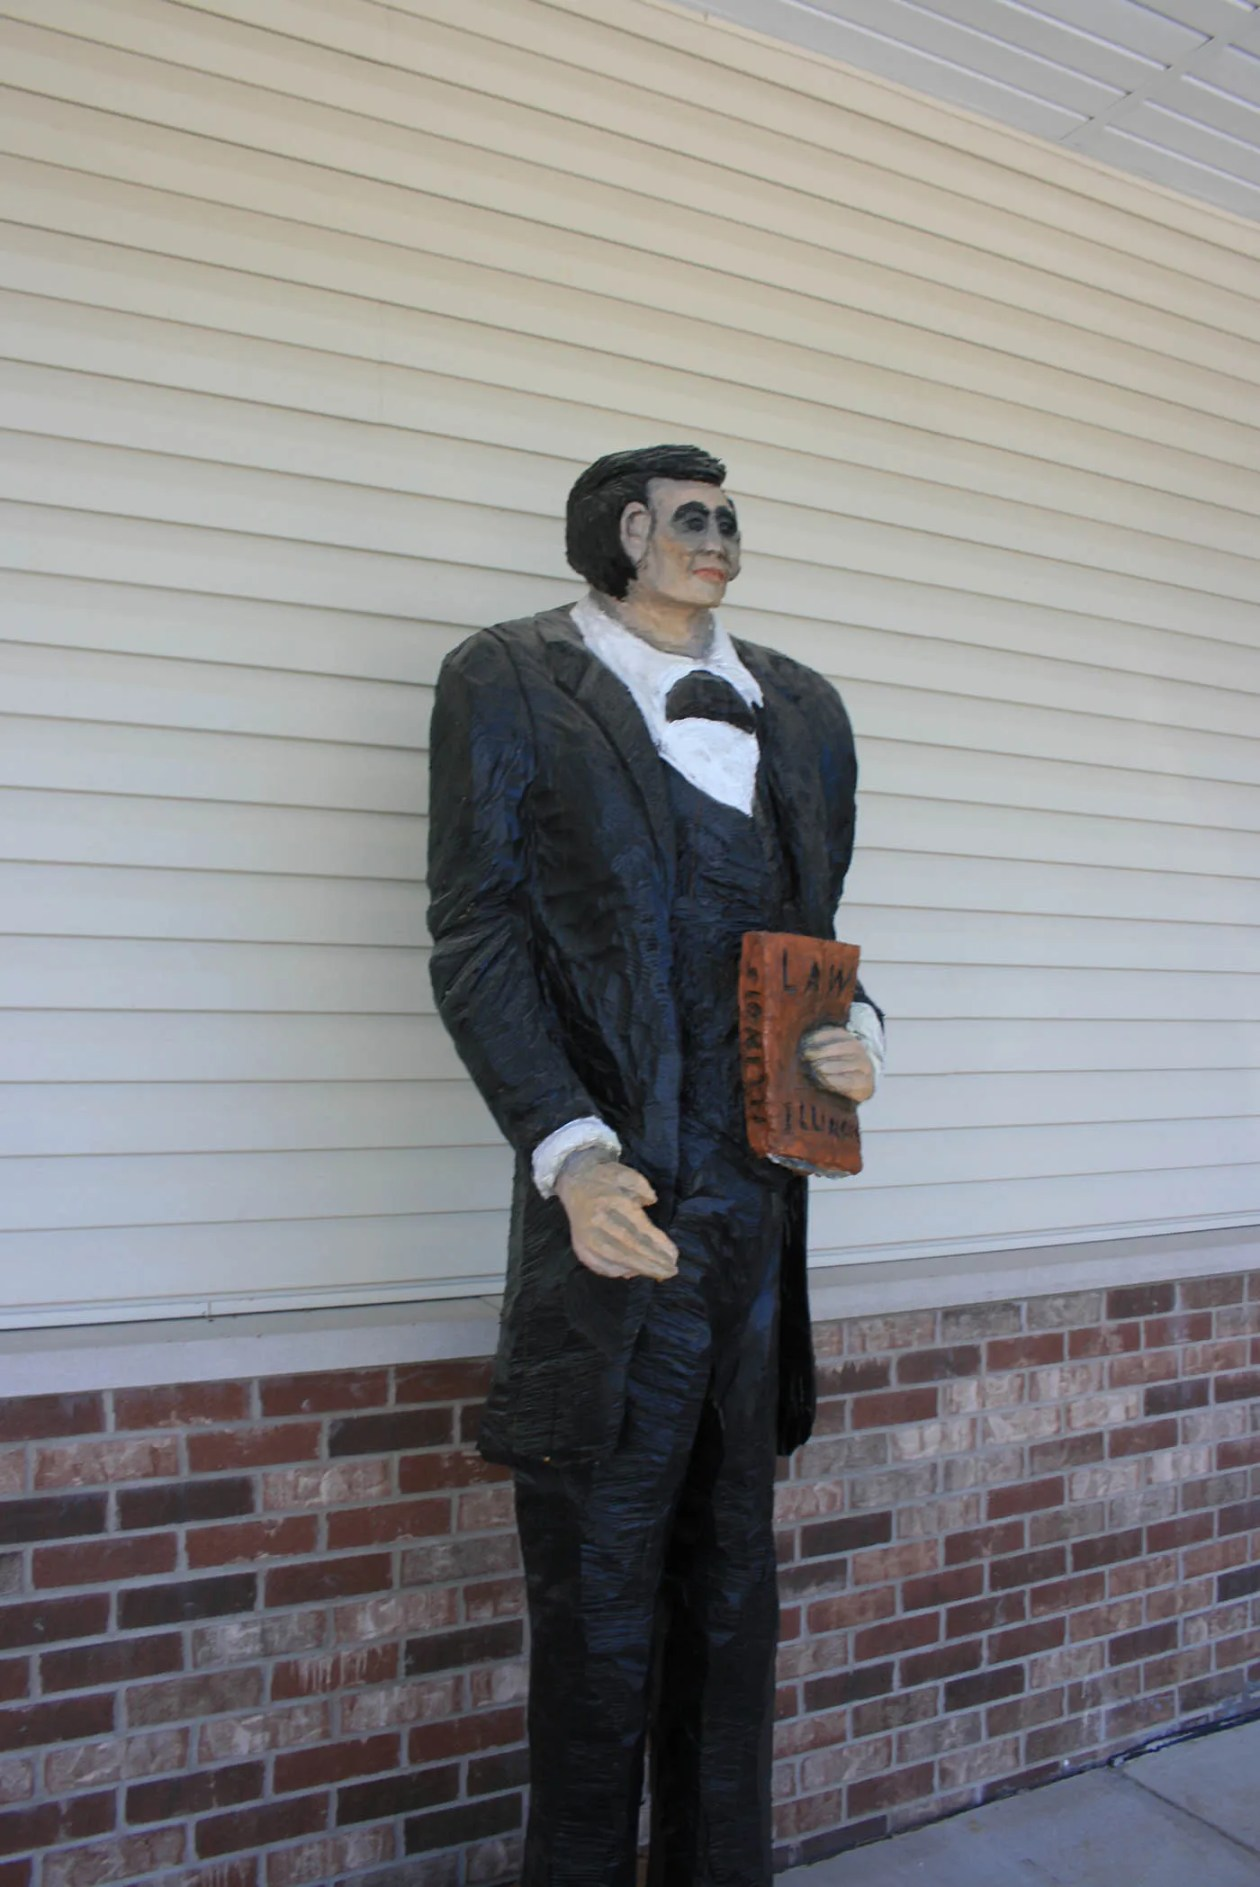 World's Tallest Abraham Lincoln Statue in Ashmore, Illinois